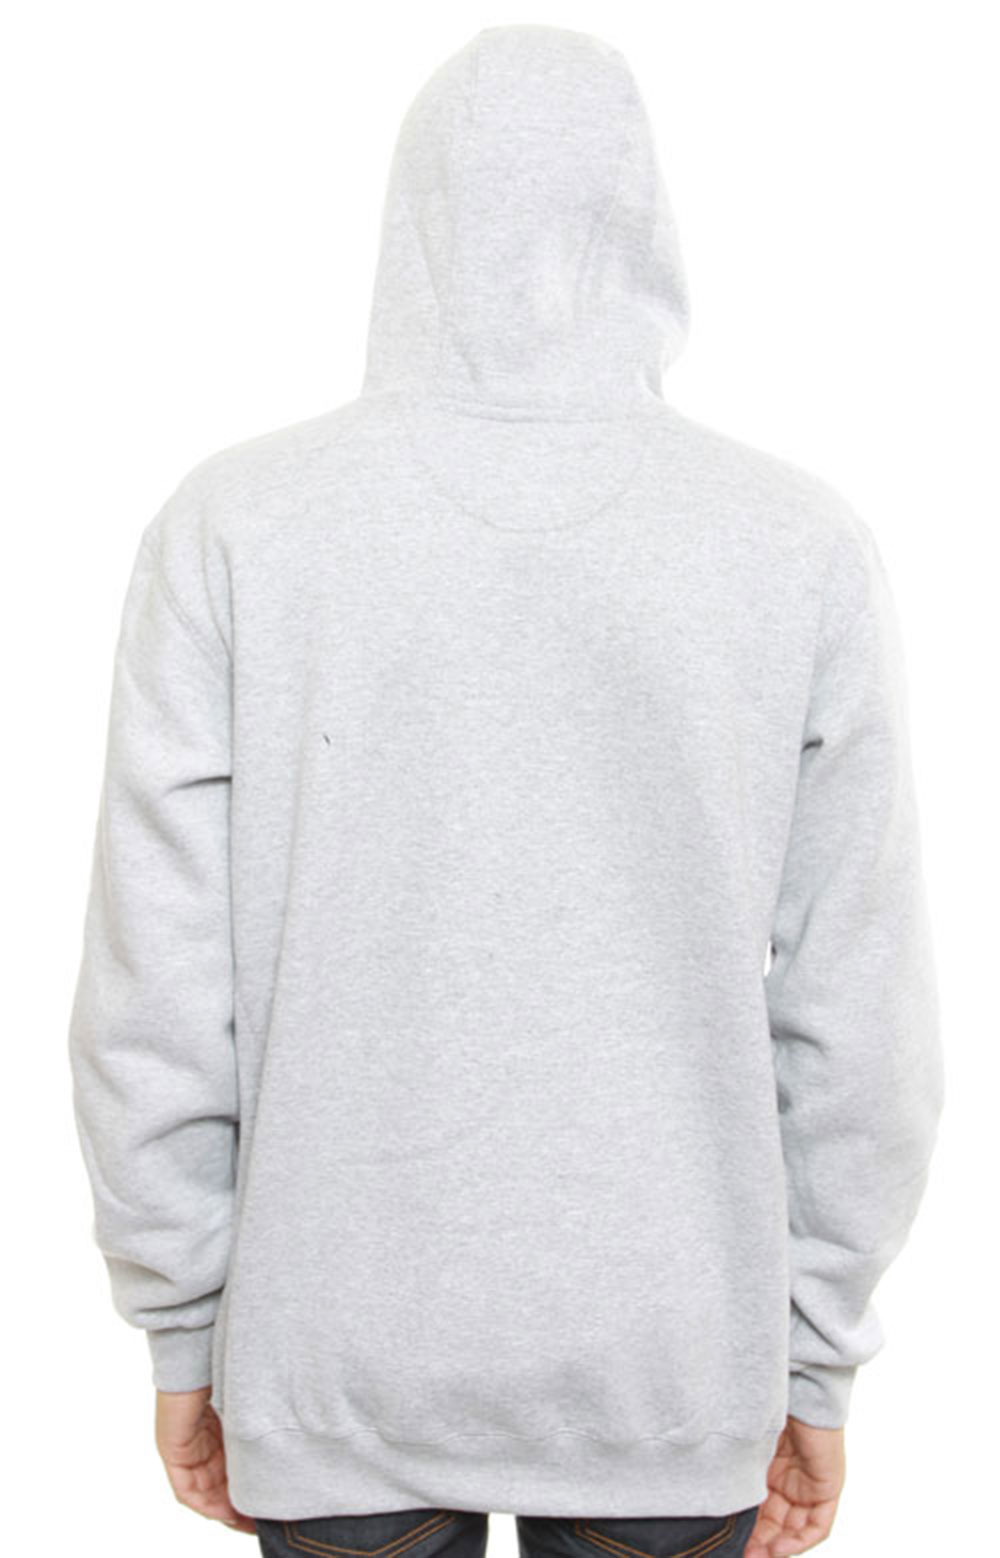 (K121) Midweight Pullover Hoodie - Heather Grey 2